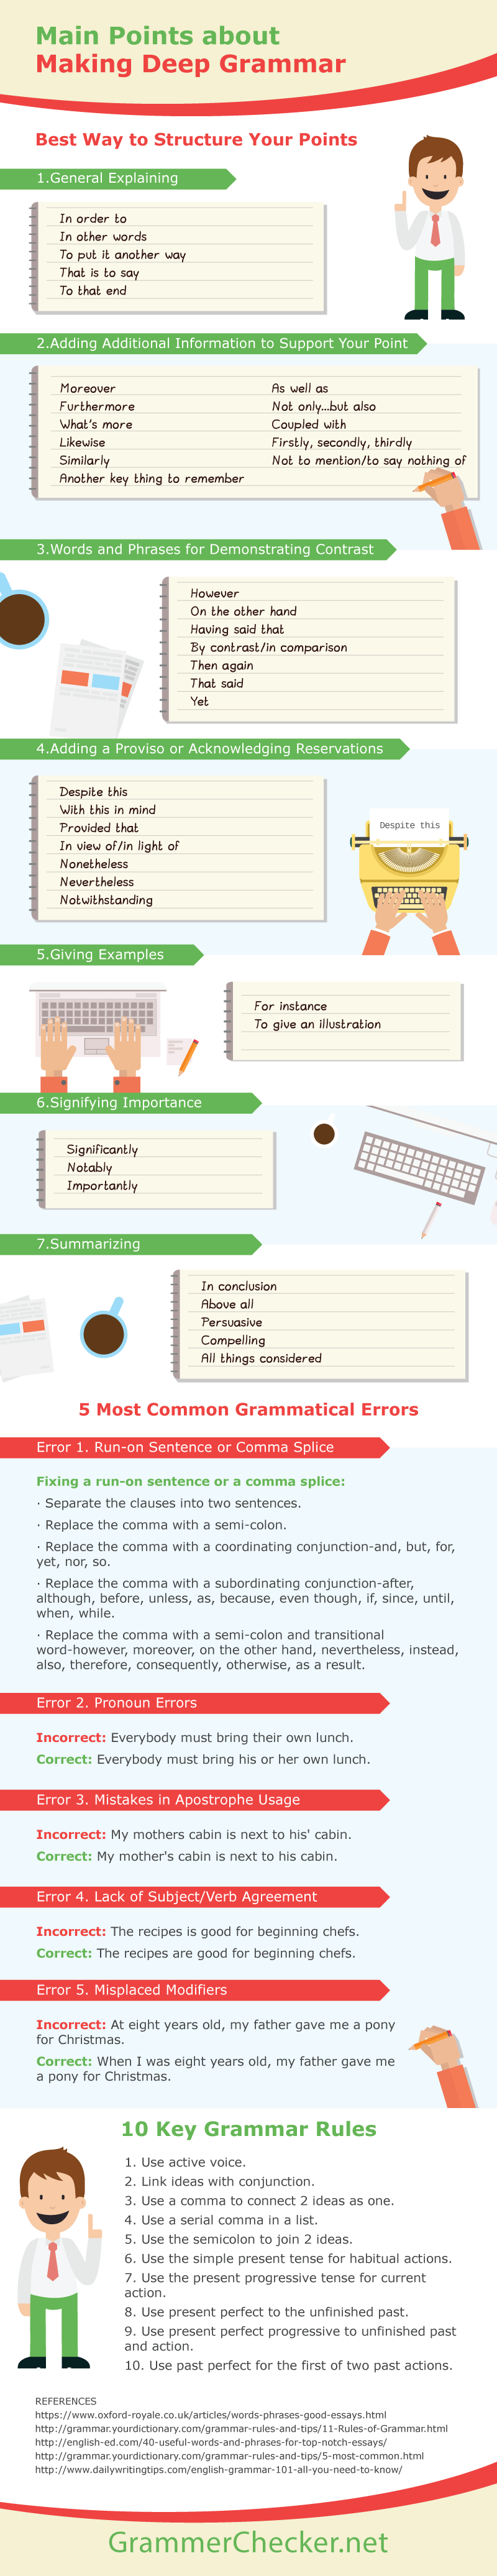 Making Deep Grammar Check